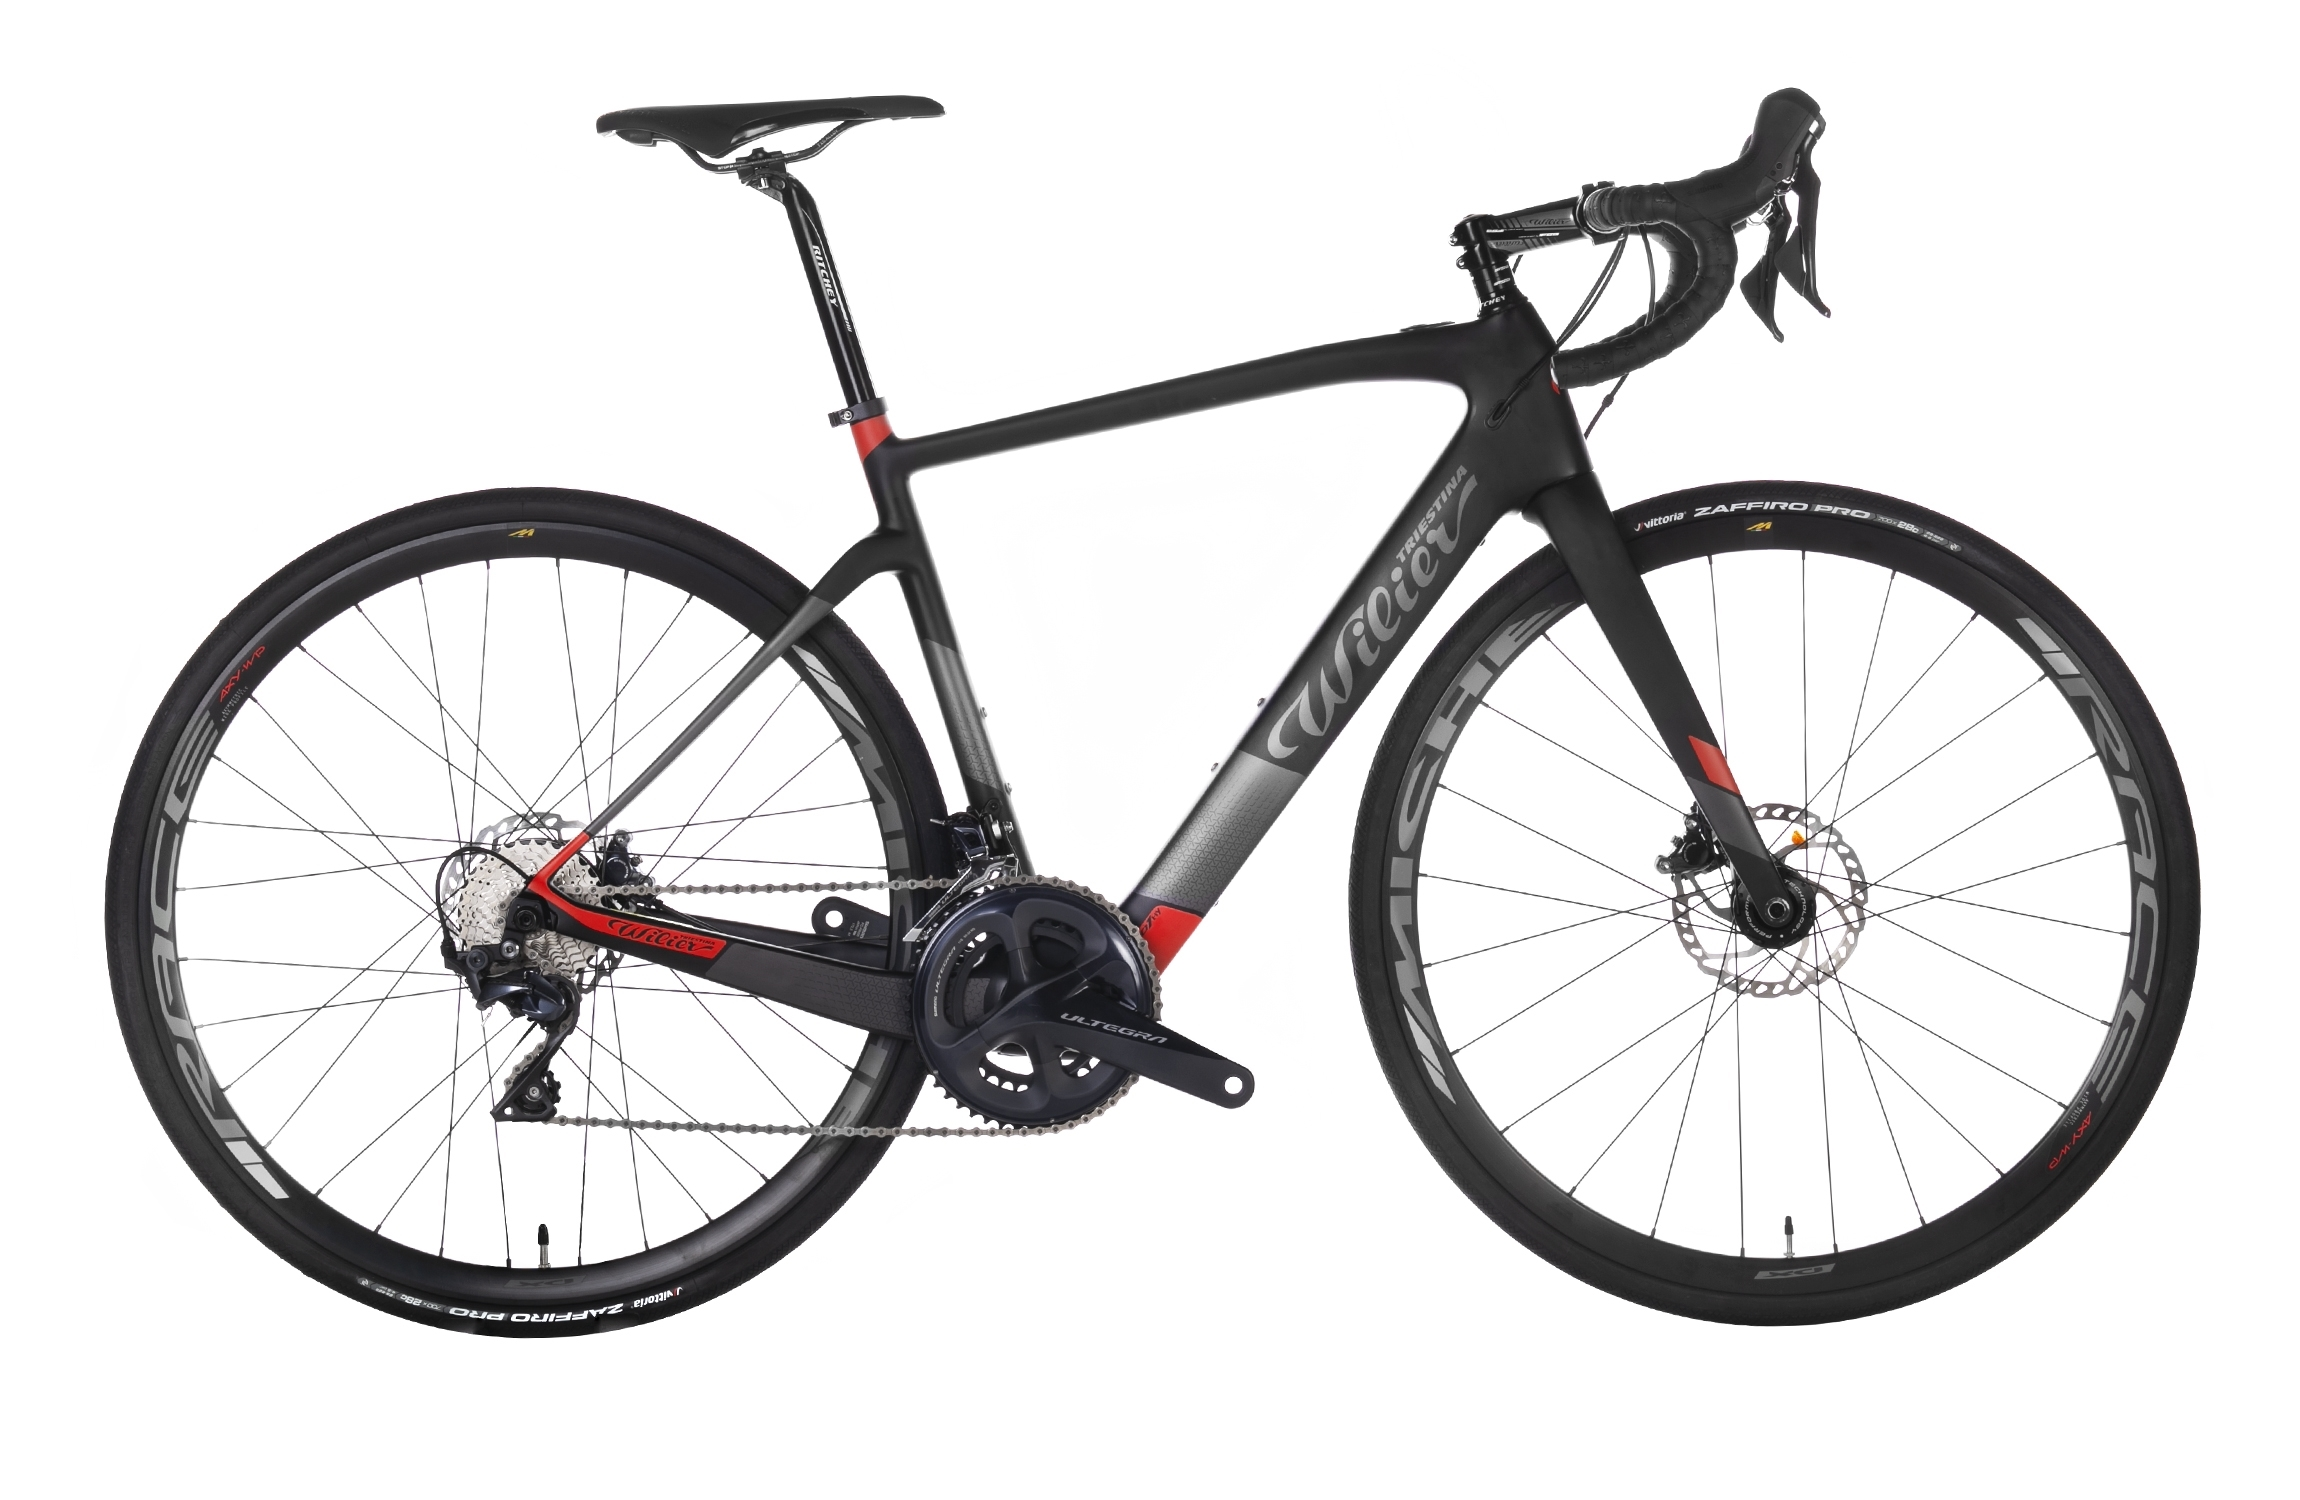 kolo CENTO1HY + ULTEGRA R8020 + MICHE black red XL